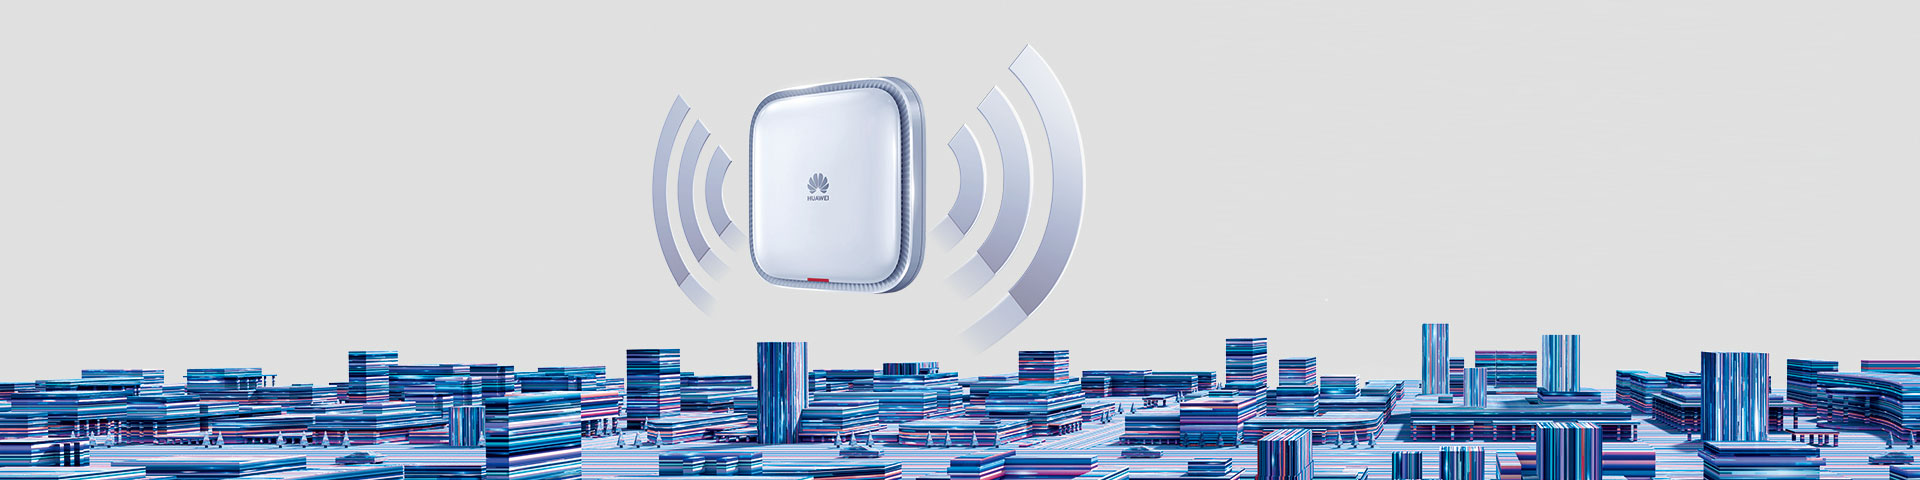 post airengine wifi 6 tecnologia 5g